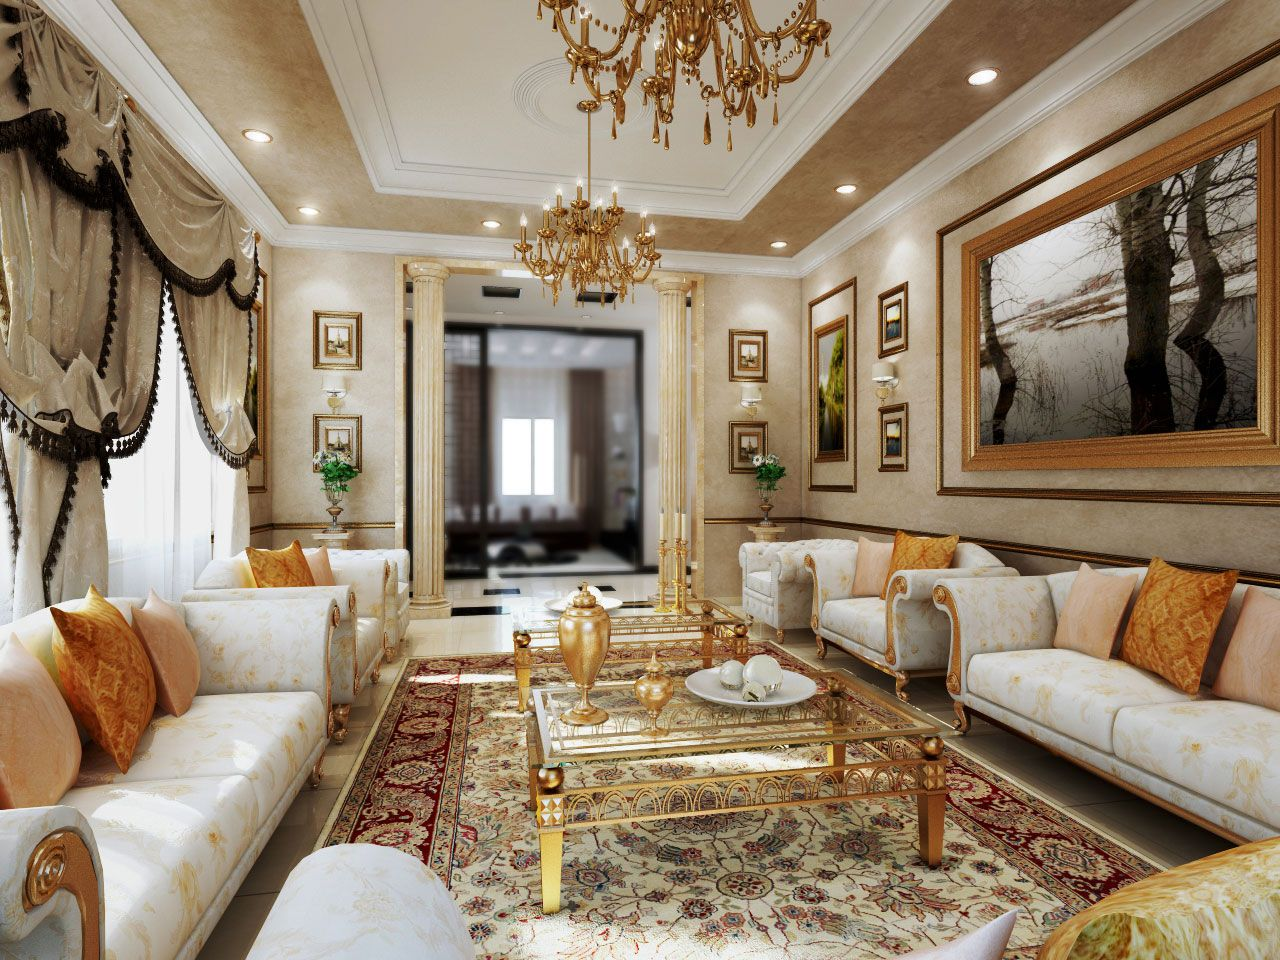 nice internal house design. Furniture  Classic Interior Design Ideas With Amazing White Sofas And Cool Square Glass Tables In Nice Gold Legs Also Elegant Crystal Chandelier Modern Spacious nice drapes and elegantly decorated The royal touch